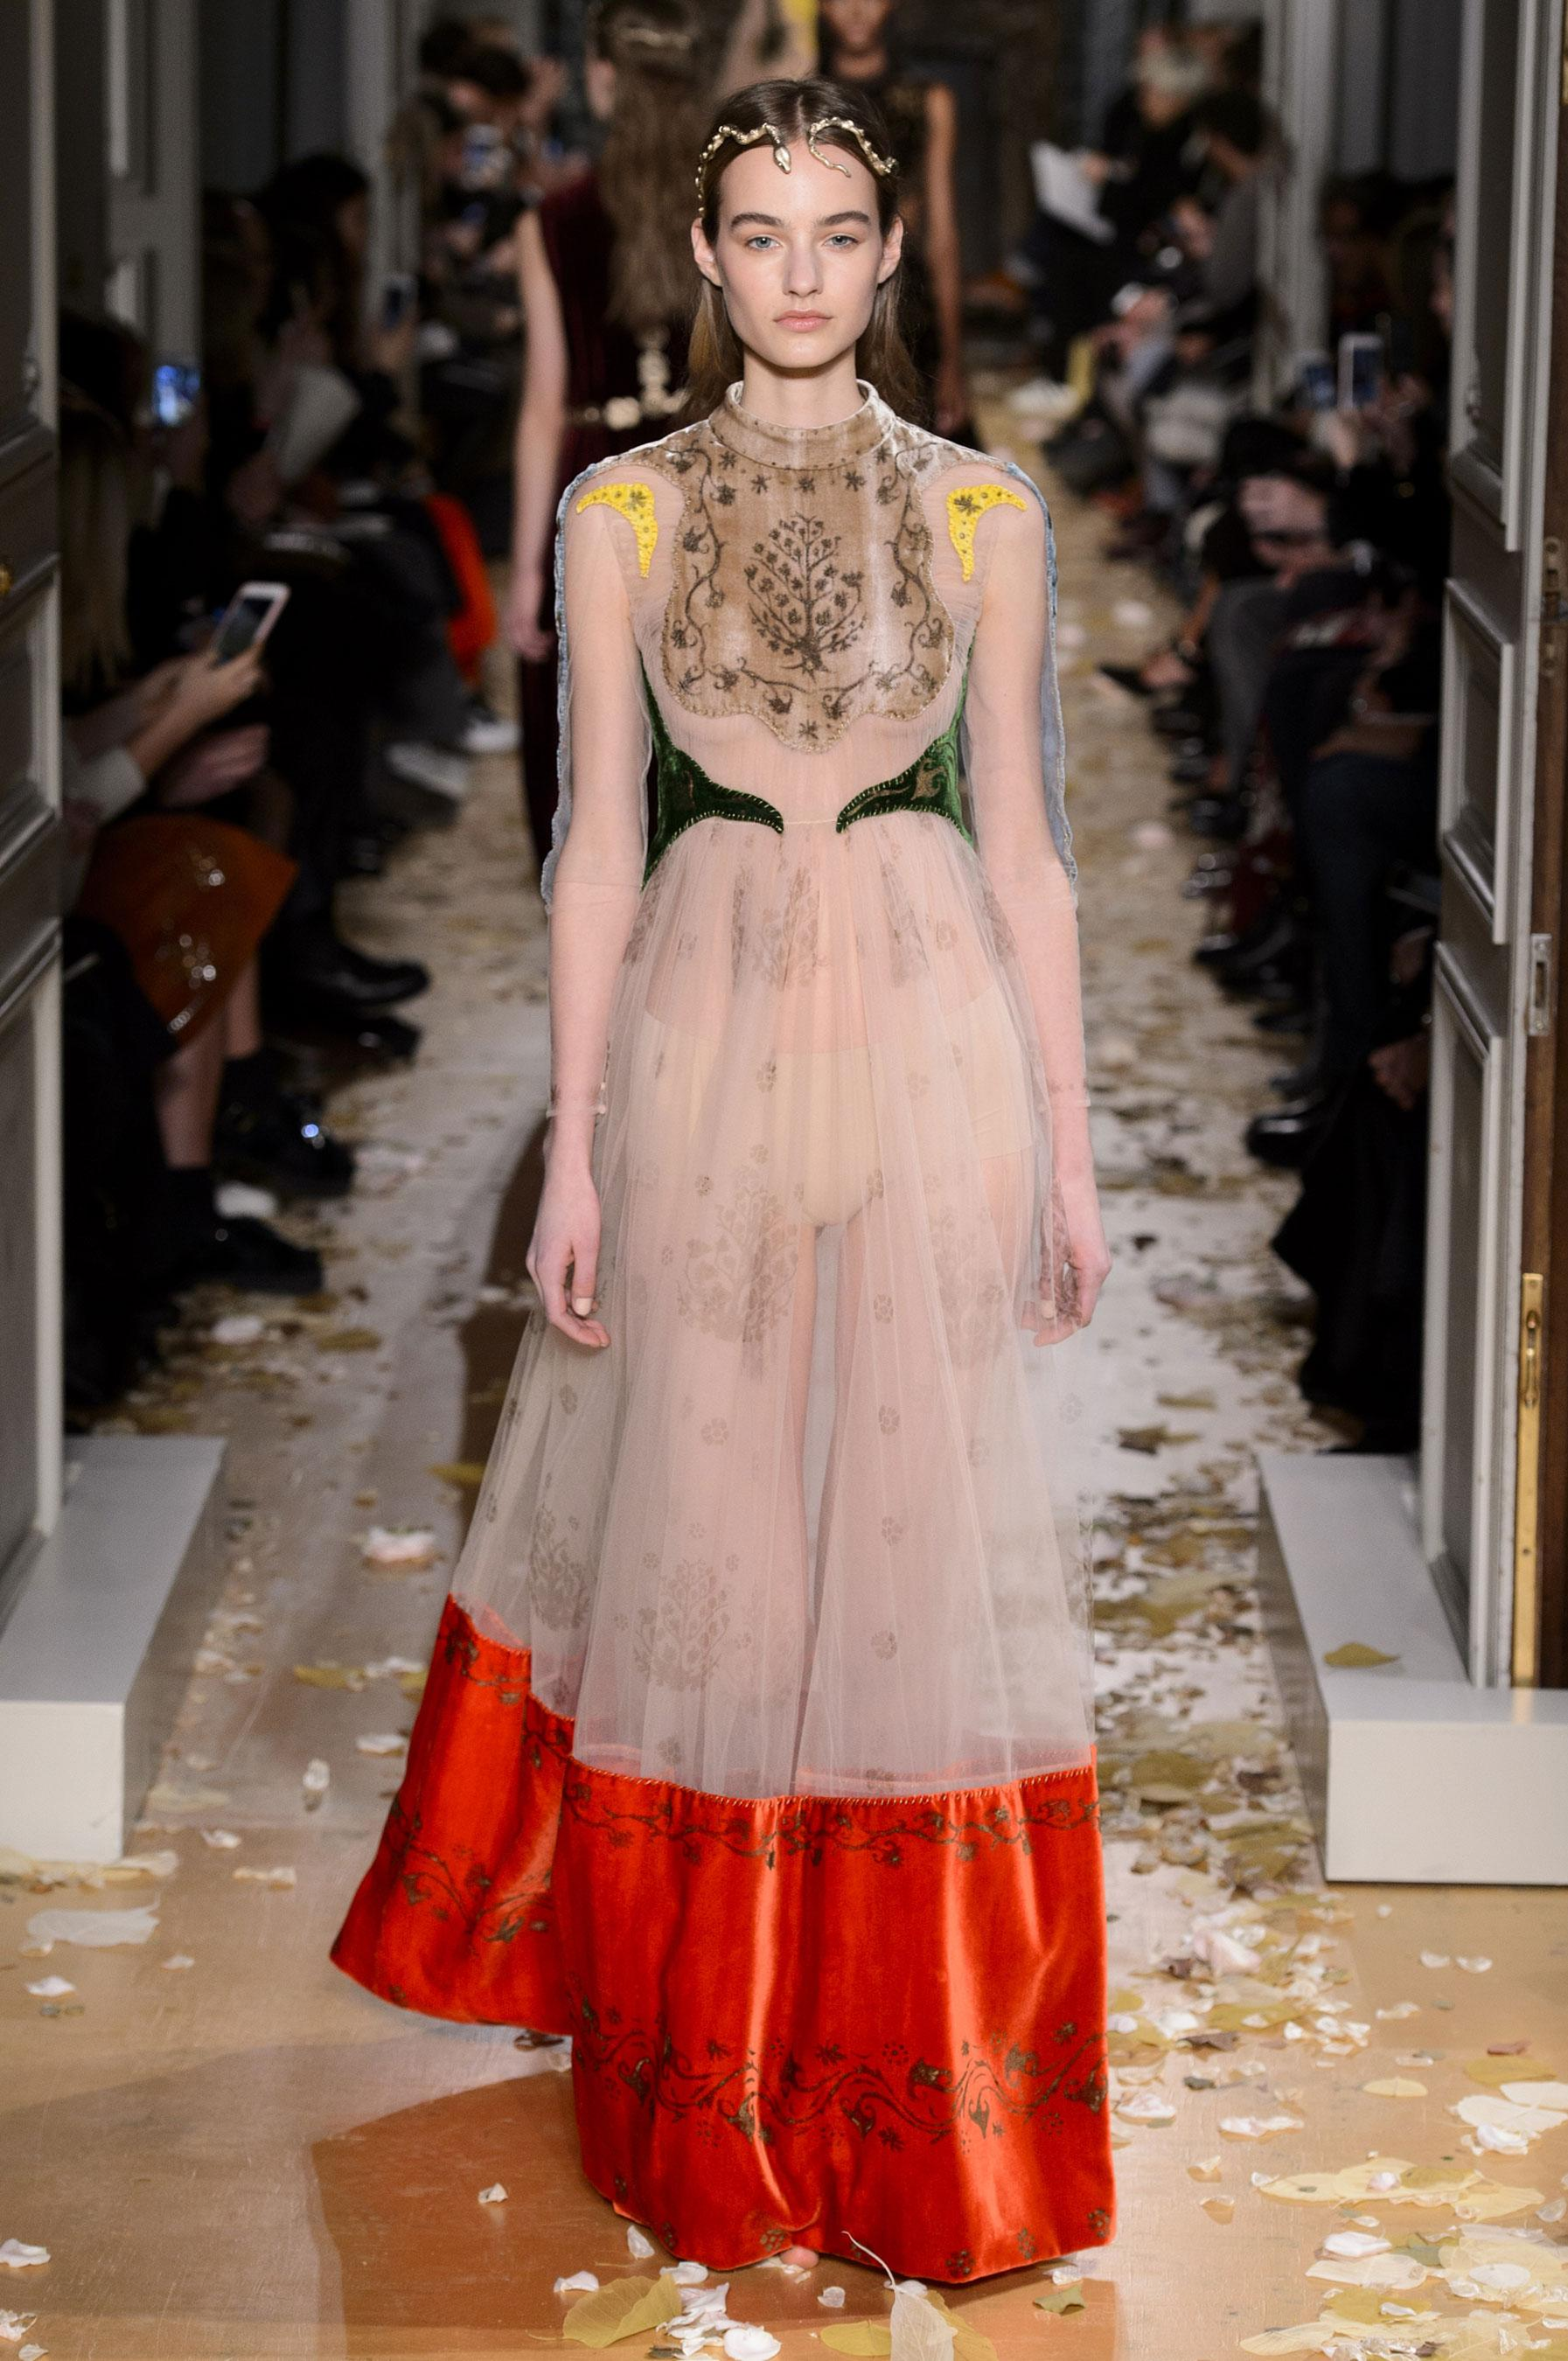 D fil valentino printemps t 2016 couture madame figaro for Haute couture houses 2016